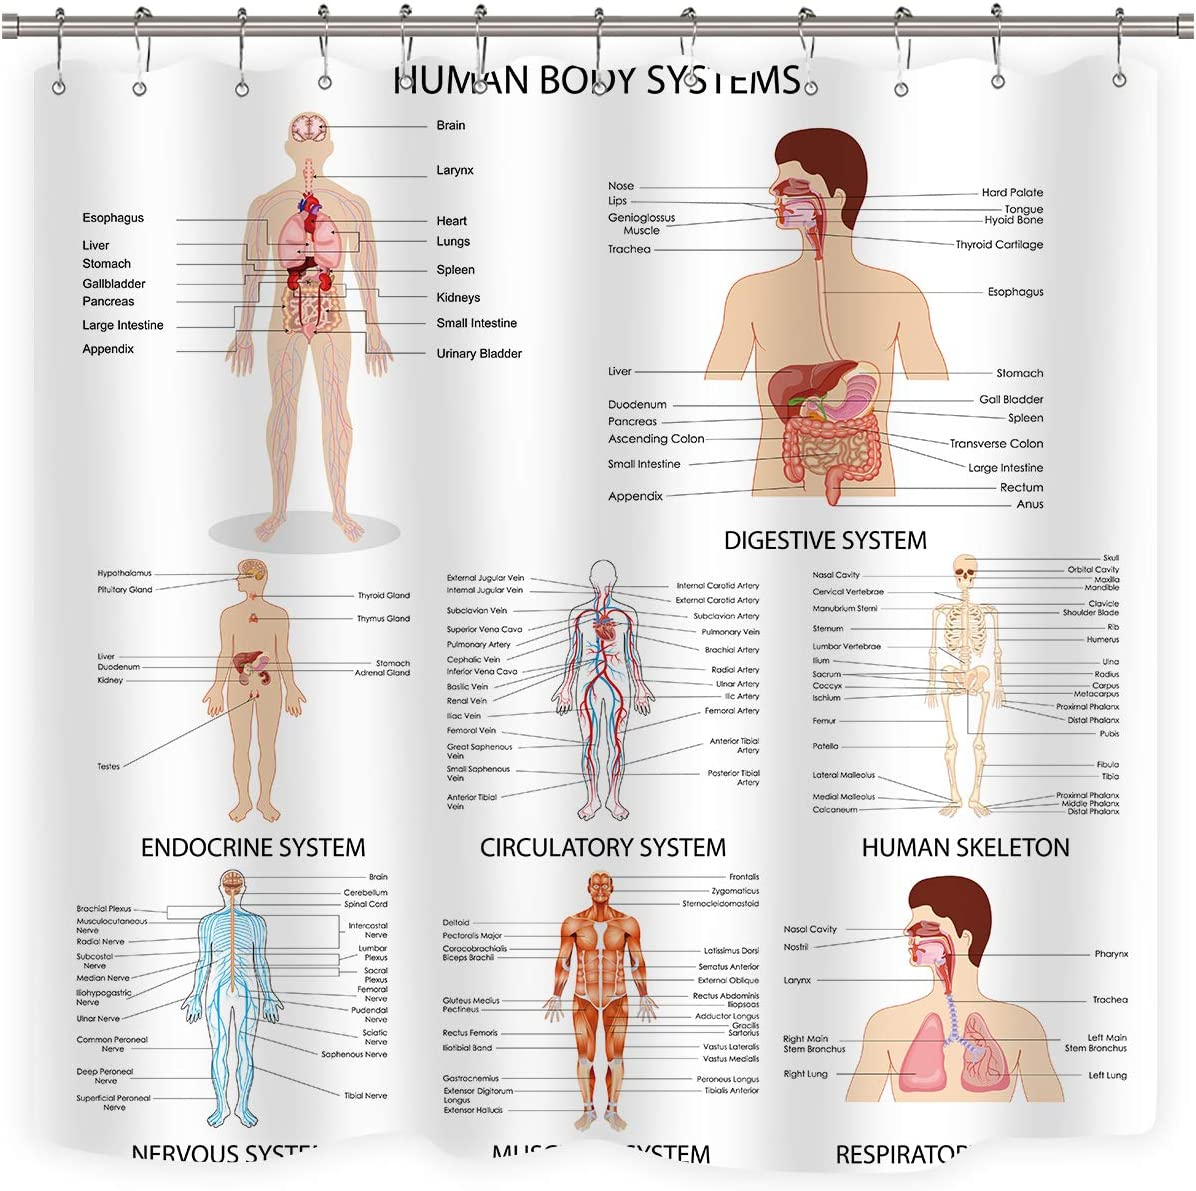 Riyidecor Human Organ Shower Curtain Anatomy Organ Body Structures Cell Life Medical Illustration Decor Bathroom Set Polyester Waterproof 72x72 Inch with Plastic Hooks 12 Pack